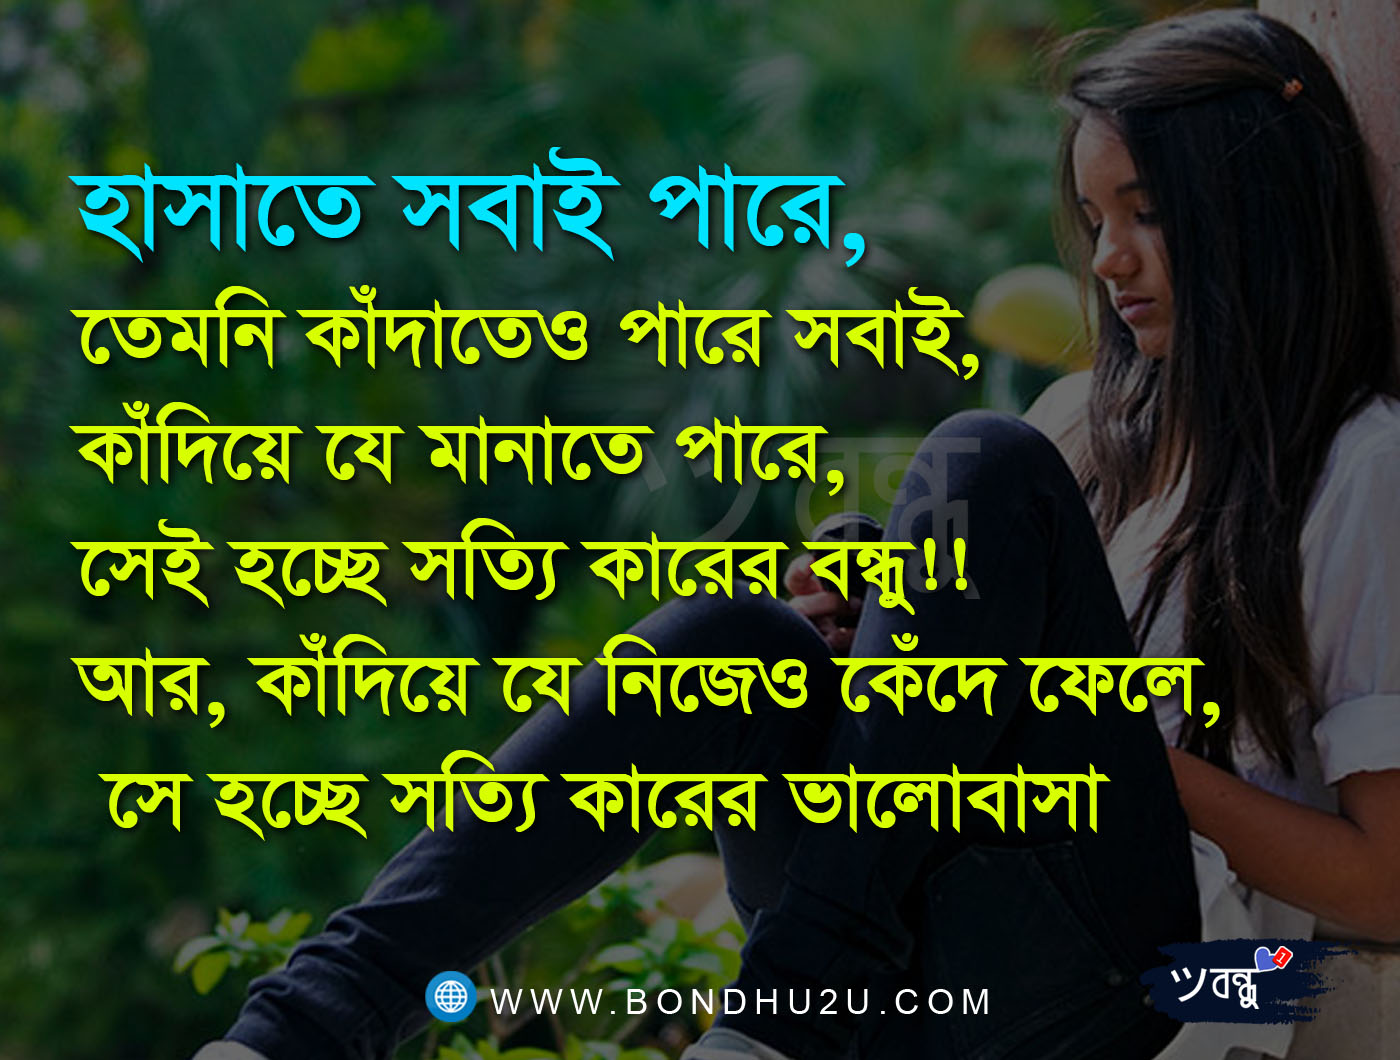 Love Sms Wallpaper Bangla : Best Bangla Love SMS - Hot Romantic Bangla Kobita Love Images SMS - bengali writing wallpaper ...